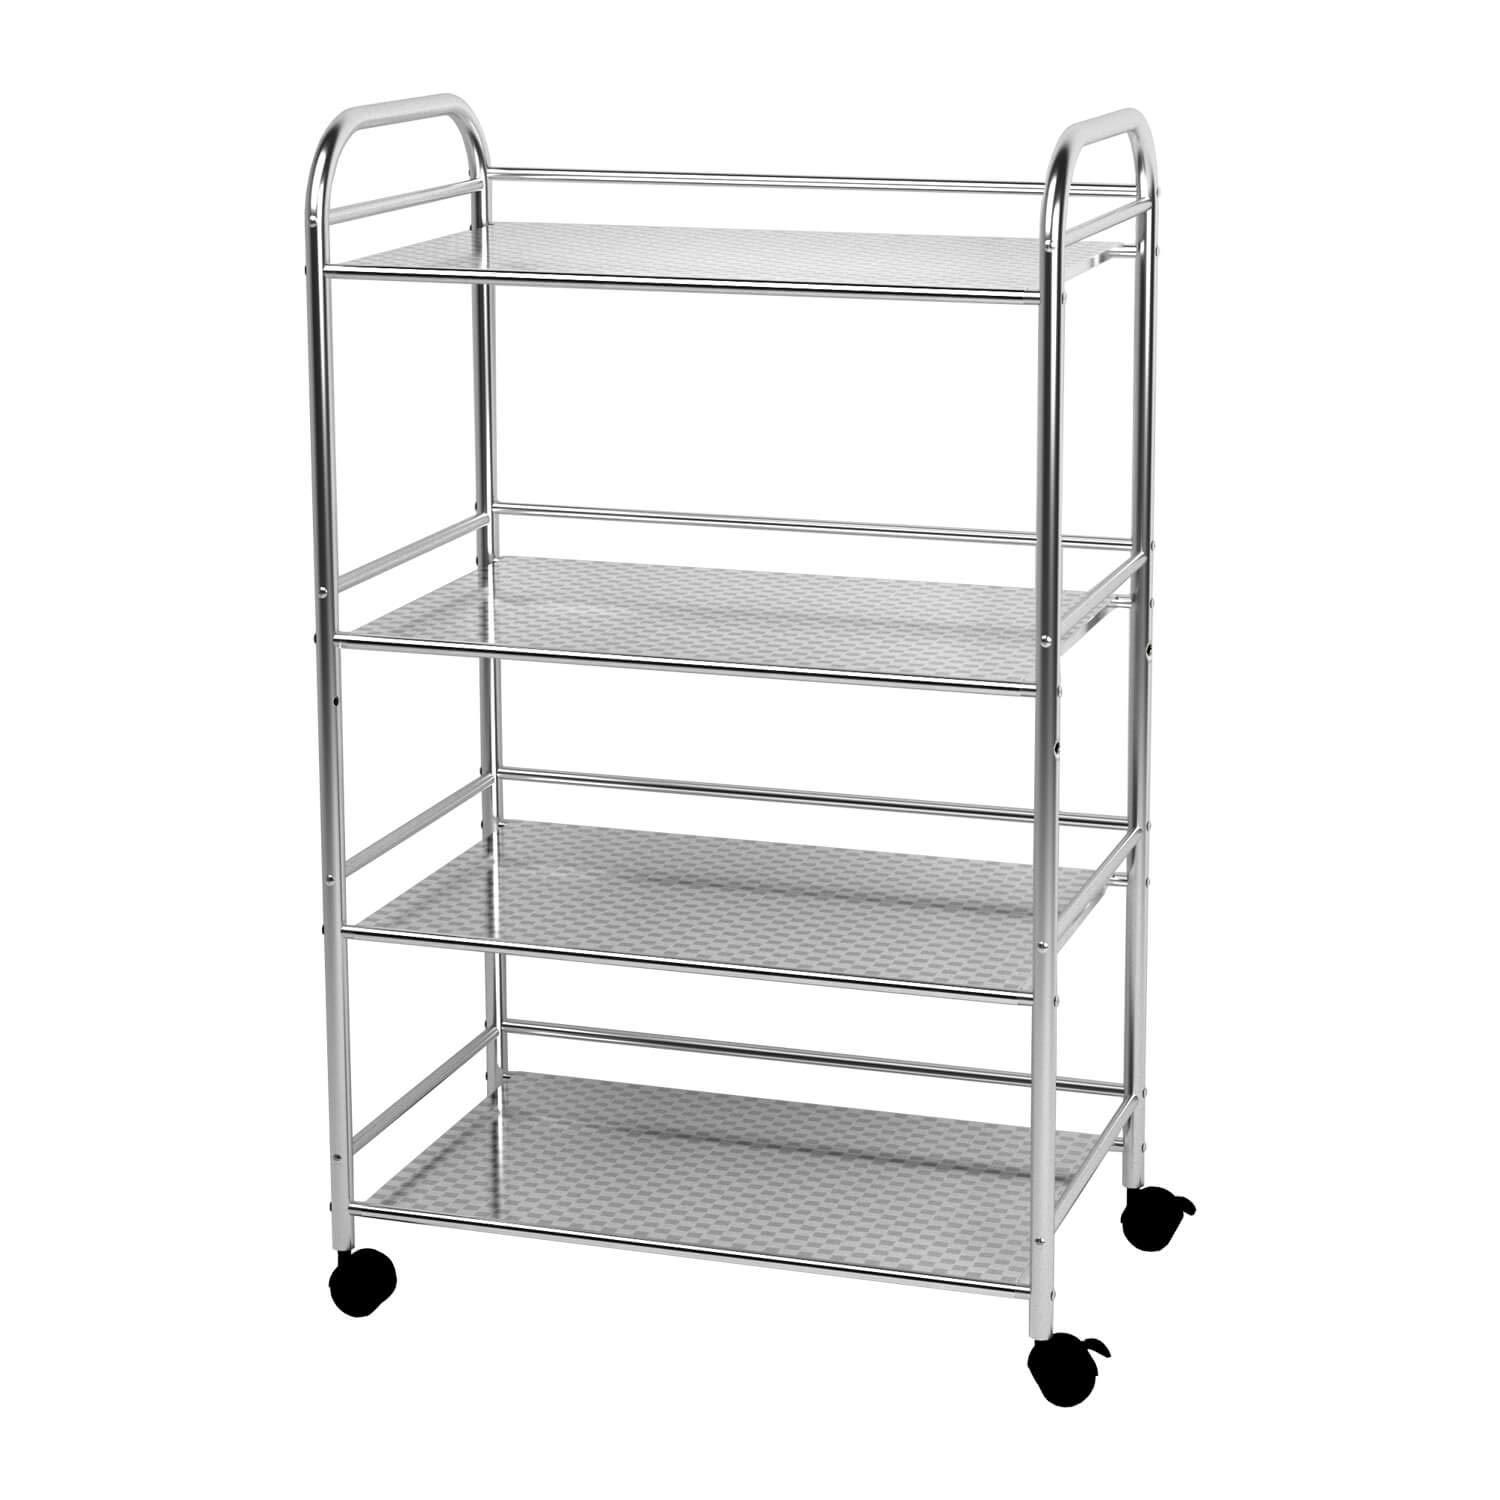 Ykease 4-shelf Shelving Units On Wheels Stainless Steel Kitchen Cart  Microwave Stand - Bathroom Garage Storage Shelves 24 Inches Wide